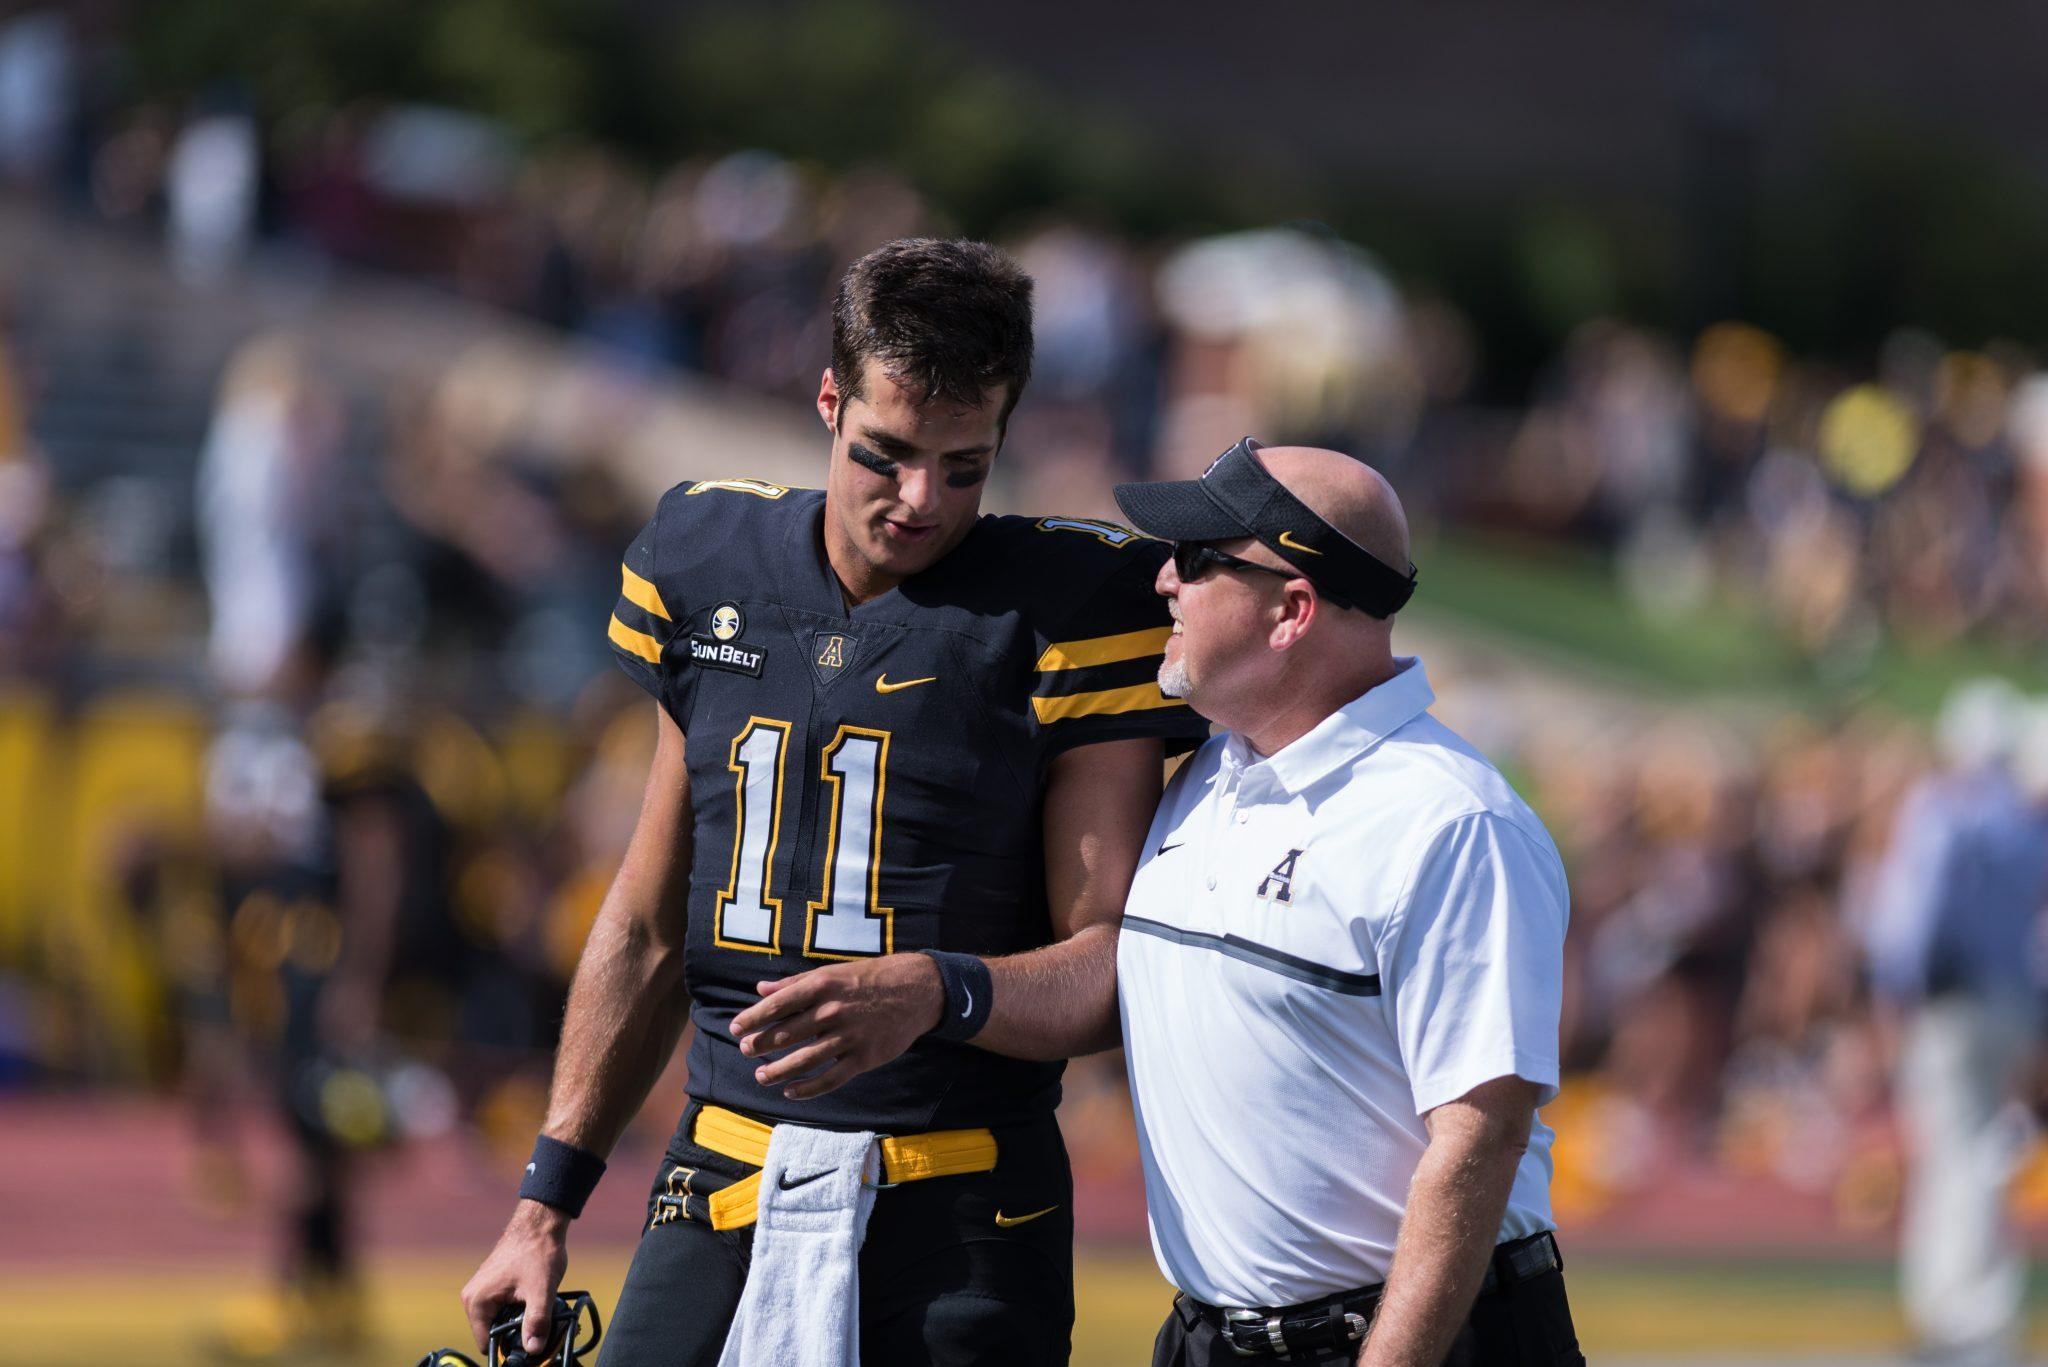 Quarterback Taylor Lamb with Secondary/Recruiting Coordinator Scot Sloan after the game against Georgia State. 17-3 (W). Photo by: Dallas Linger, Photo Editor